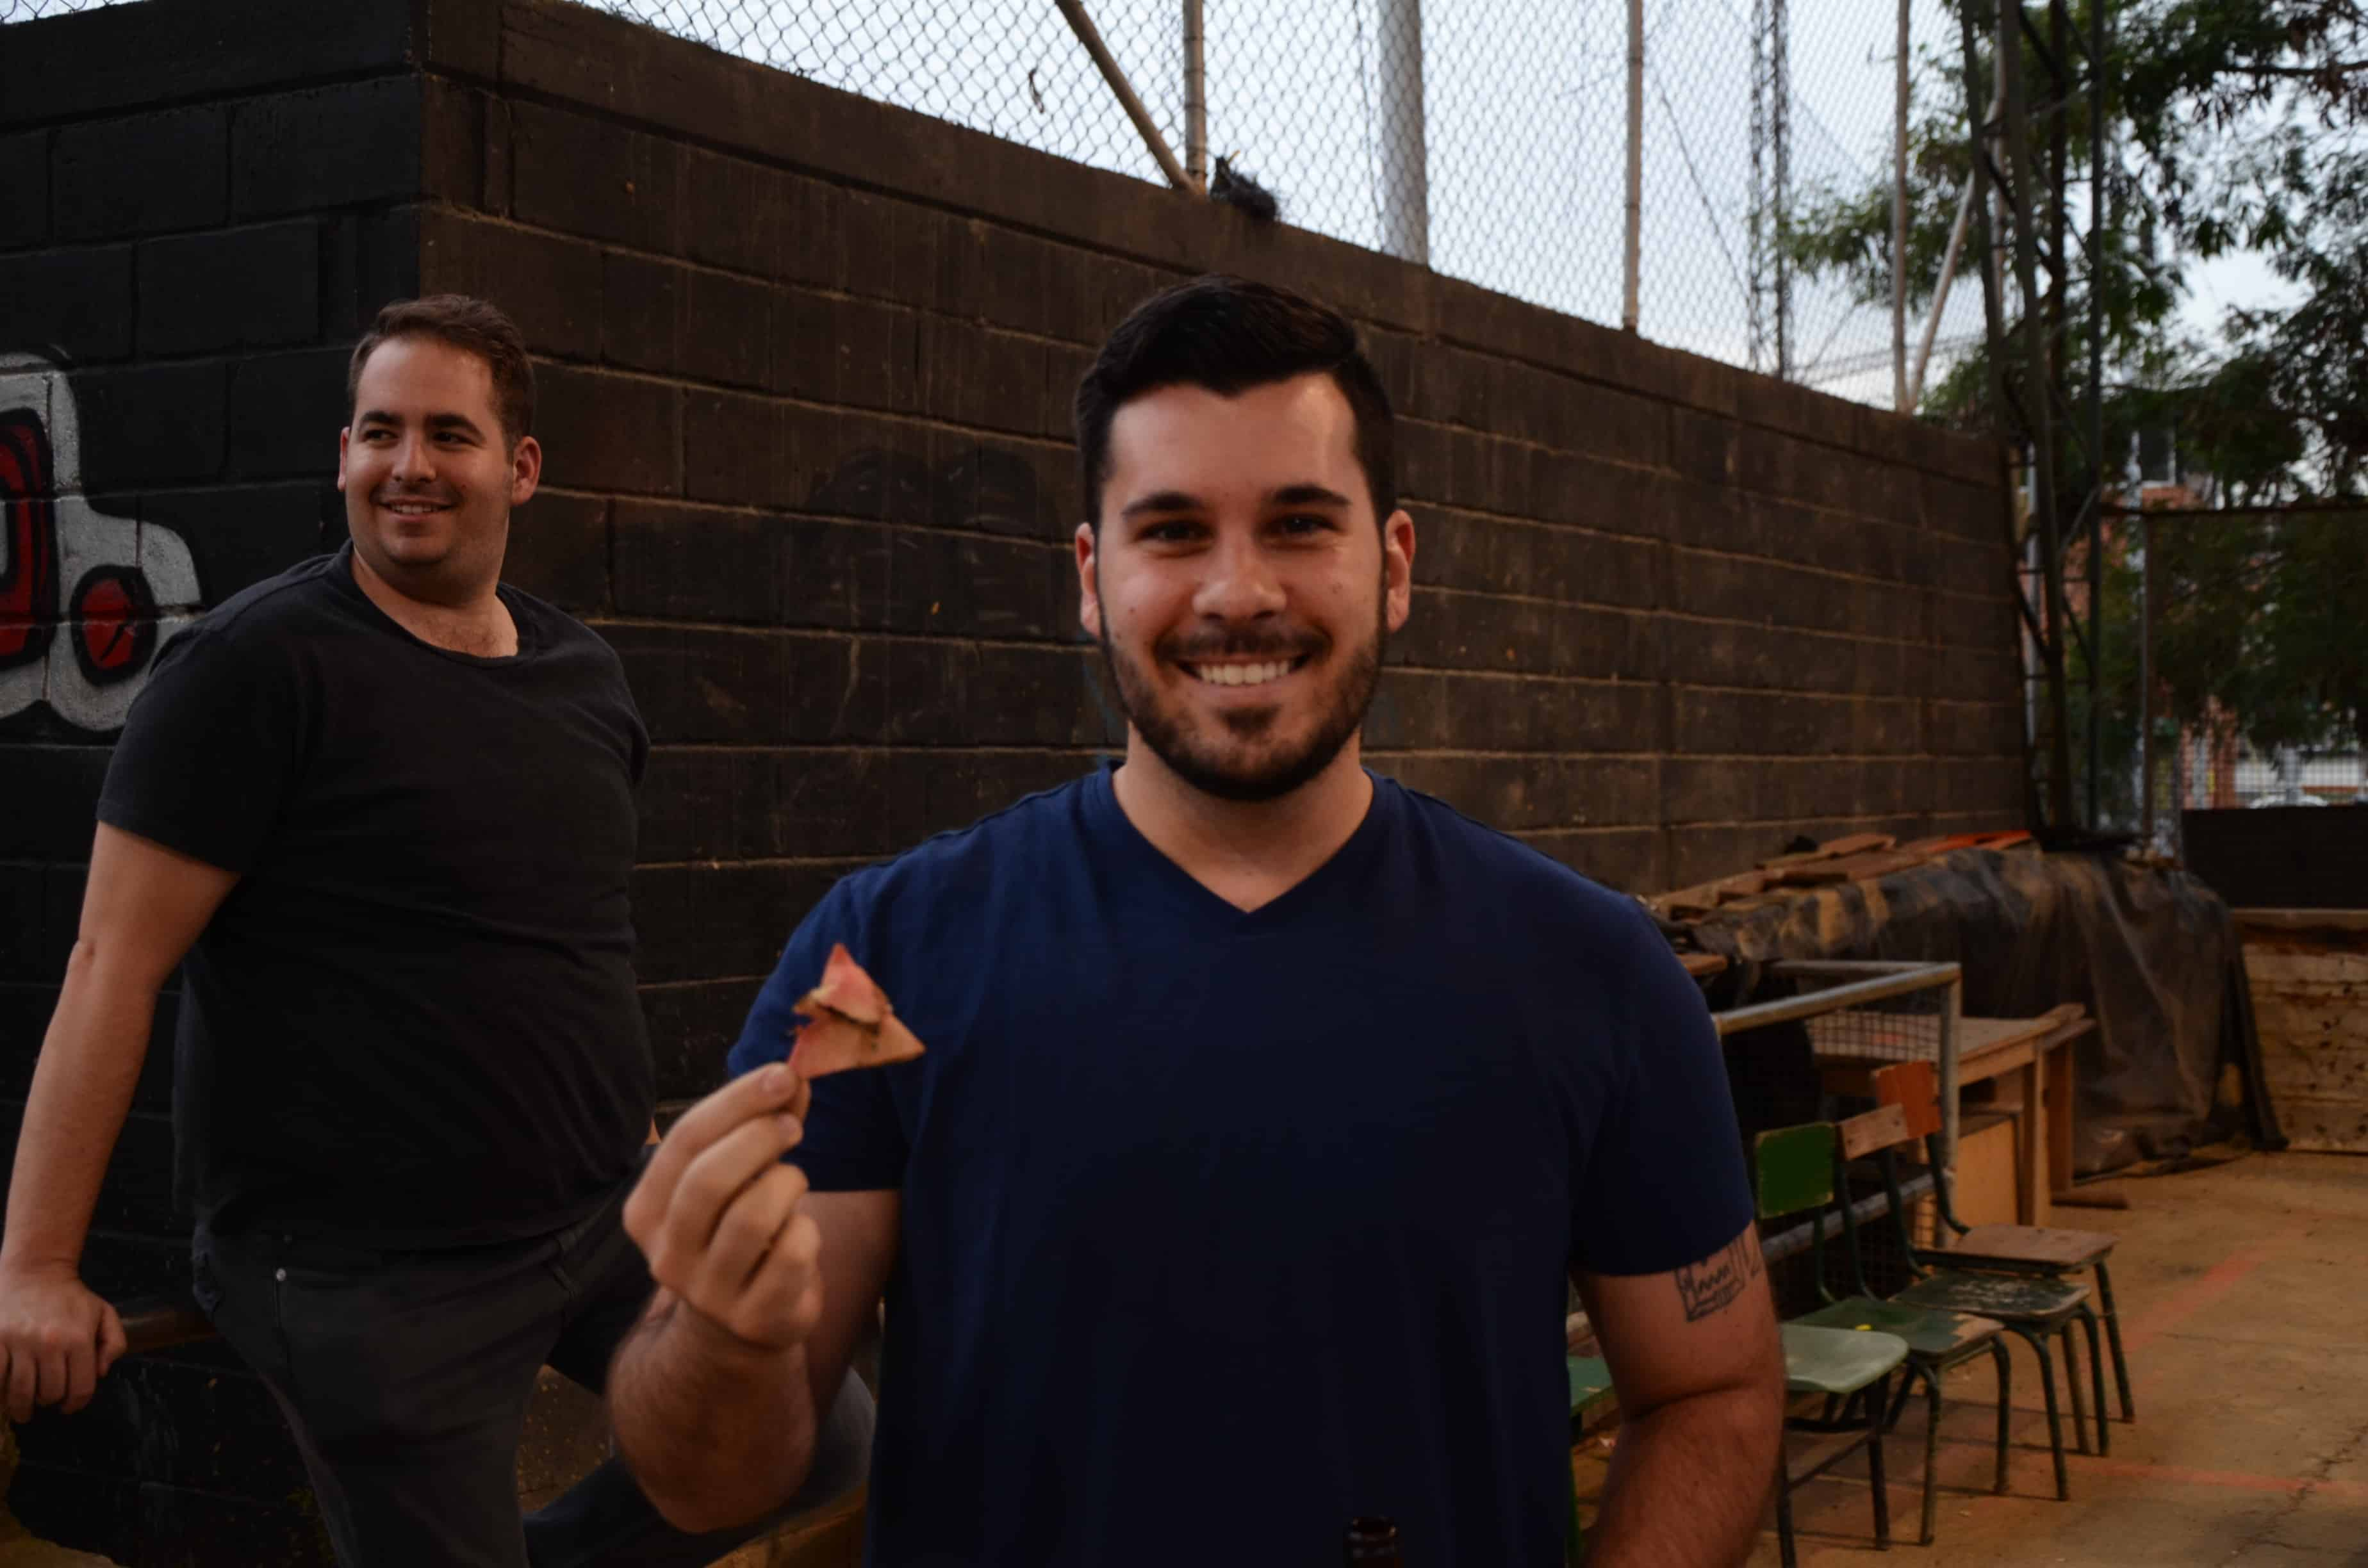 A Blast from the Past: Playing Tejo in Medellin